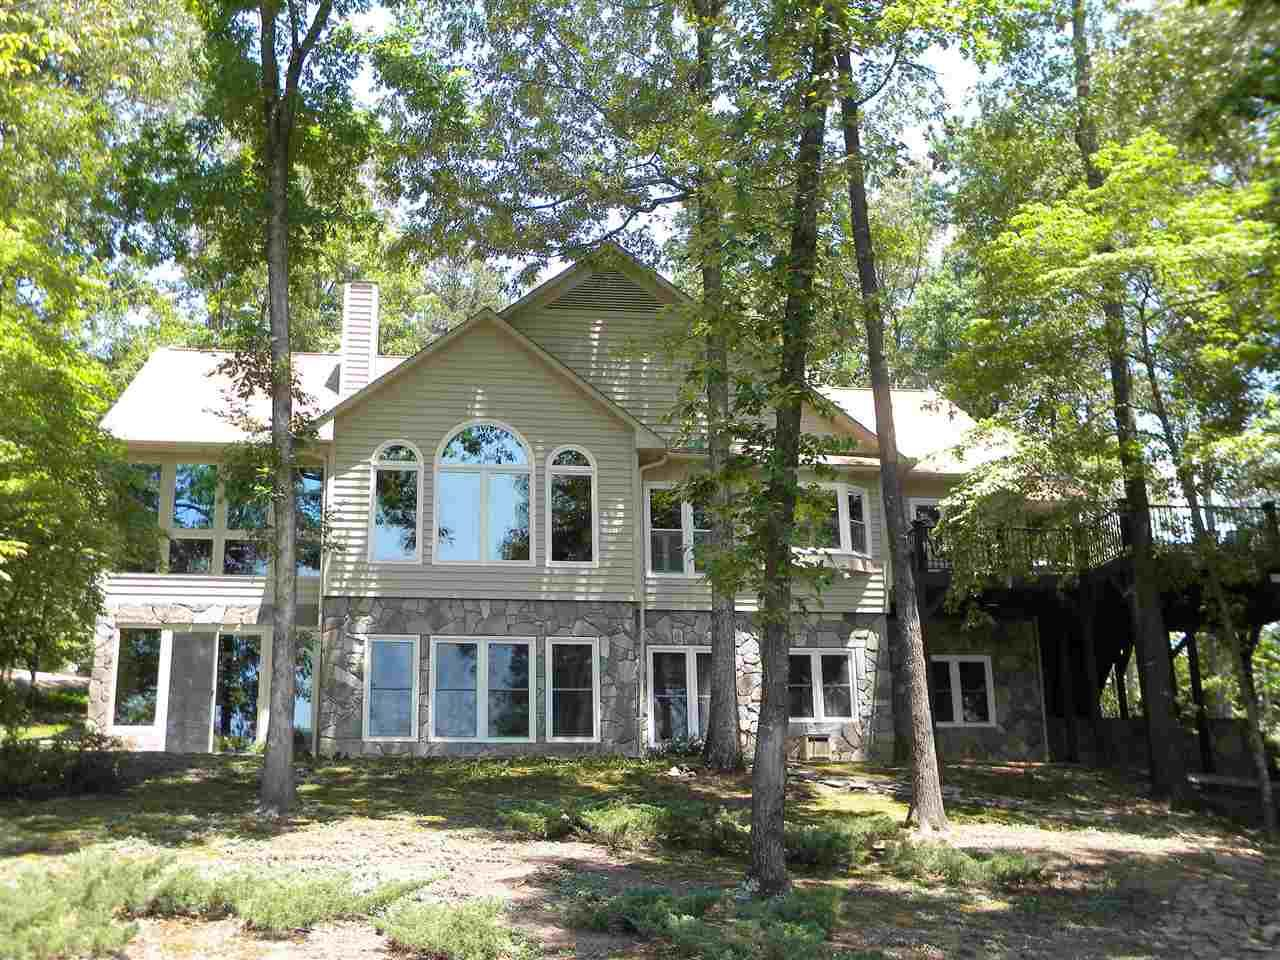 15 Lash Up Lane, Salem, SC 29676 (MLS #20175081) :: Les Walden Real Estate